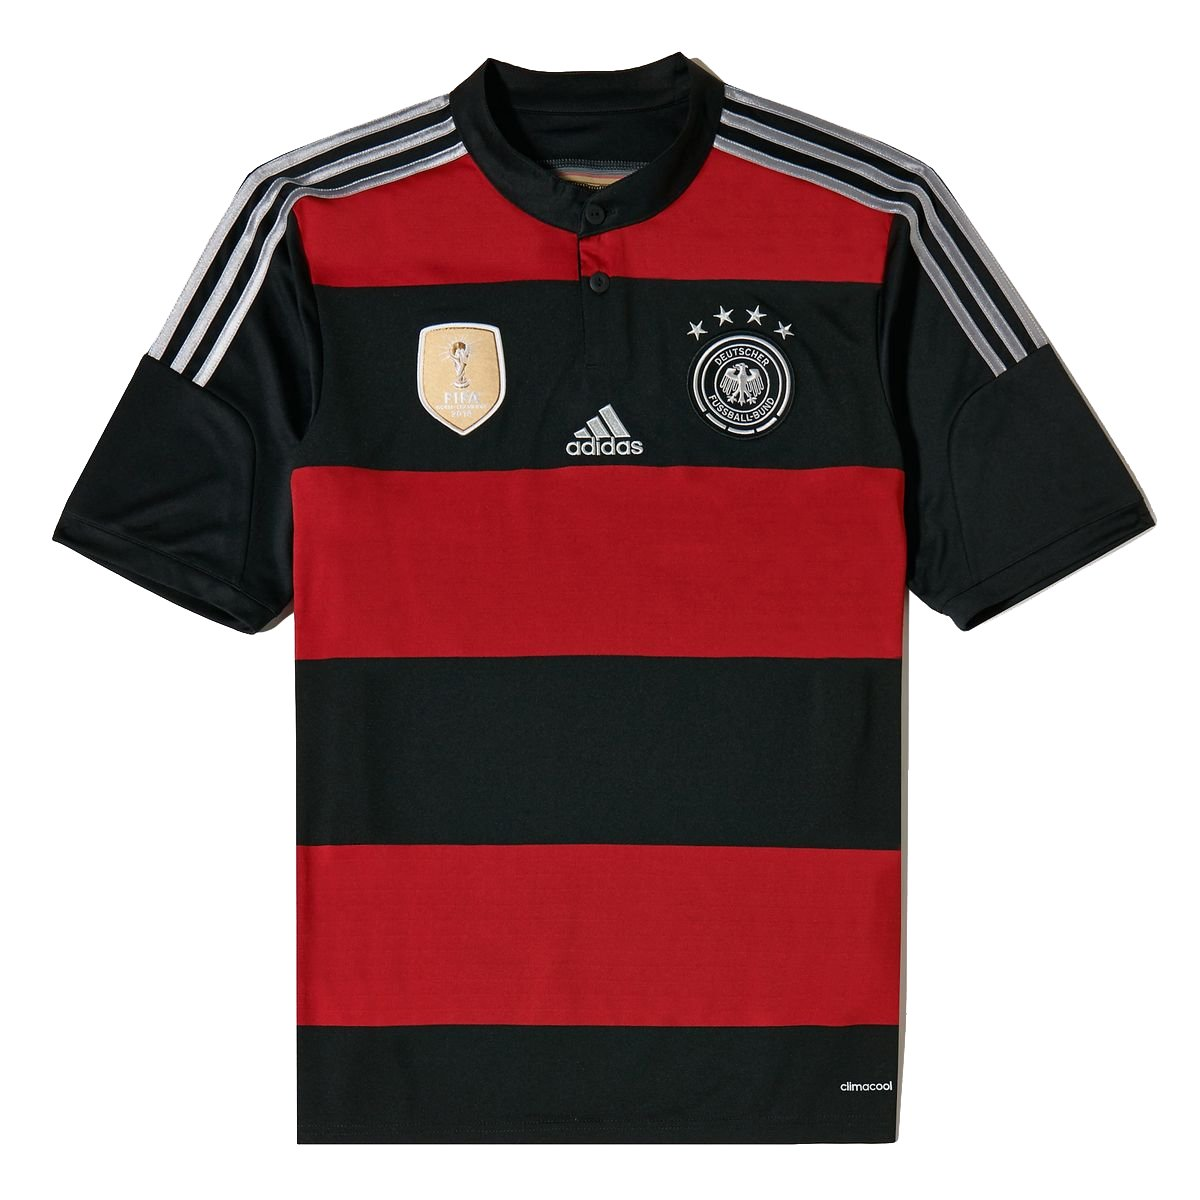 Adidas Germany 4 Star Youth Replica Jersey by adidas